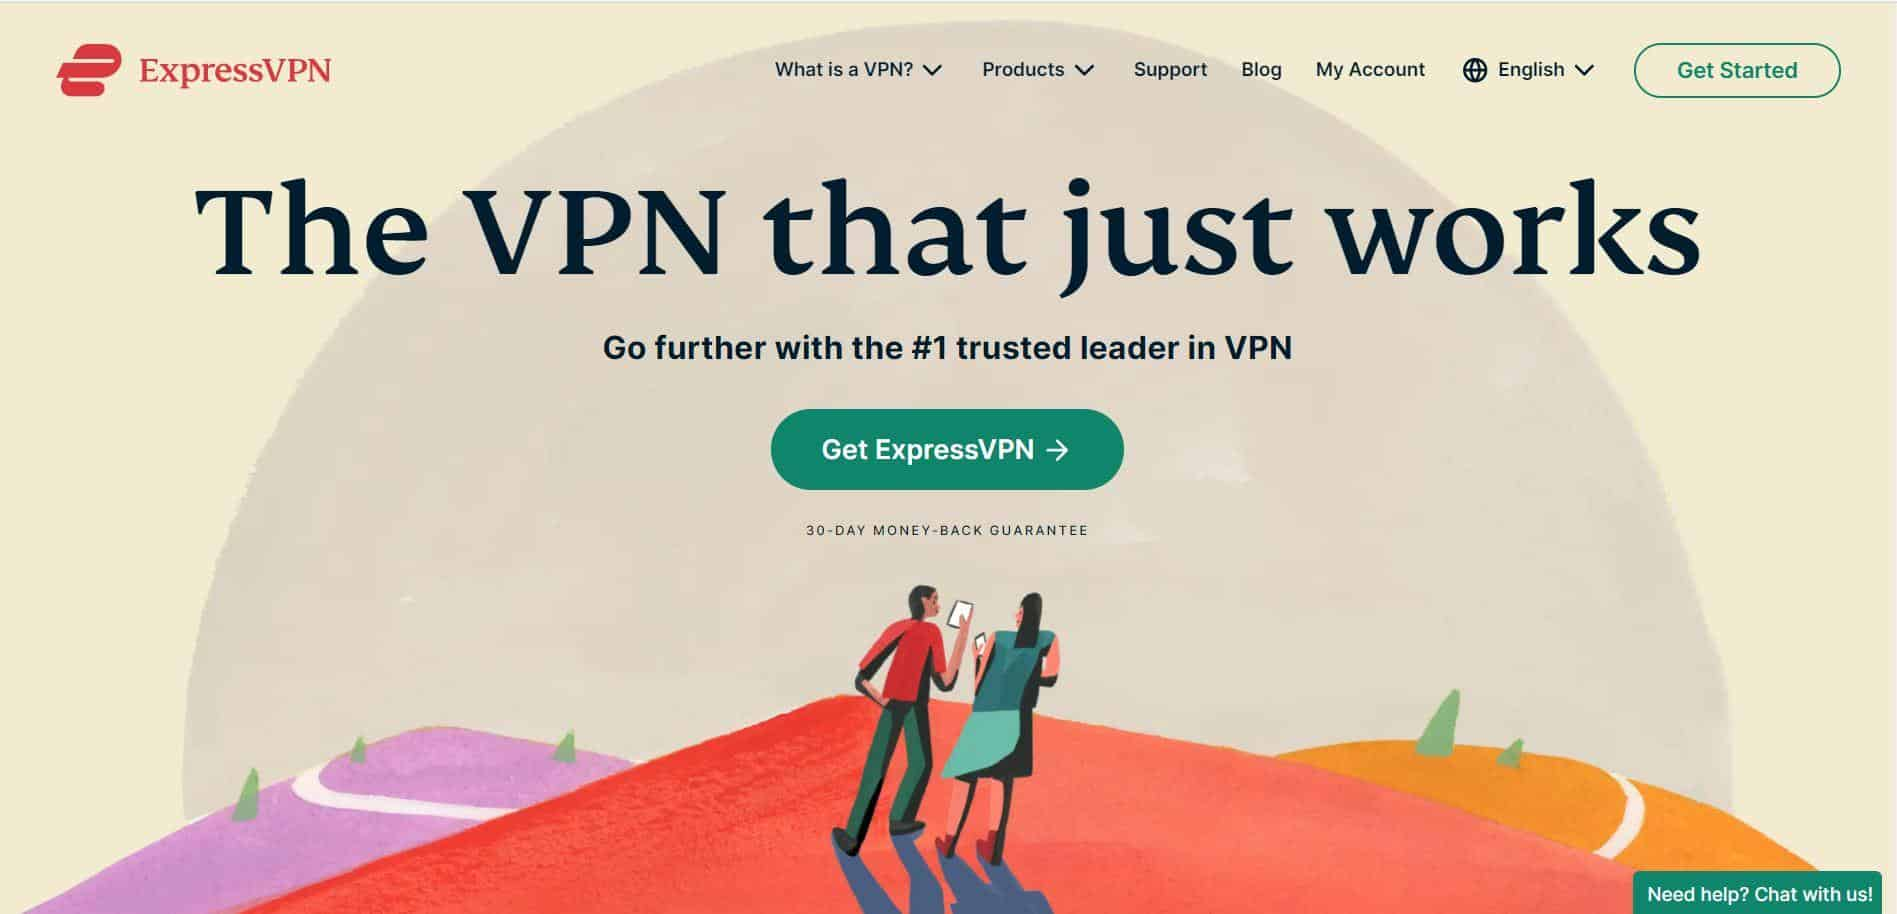 ExpressVPN is 10 Best VPNs For Singapore this year n 2021, 2022 2023, Can you be tracked if you use a VPN? yes one can still be tracked if ne uses a poorly configured vpn, What is a VPN and how do you use it?, a vpn uses a secured connection to link you with the internet. with information going through an encrypted virtual tunnel, ur location is invisible